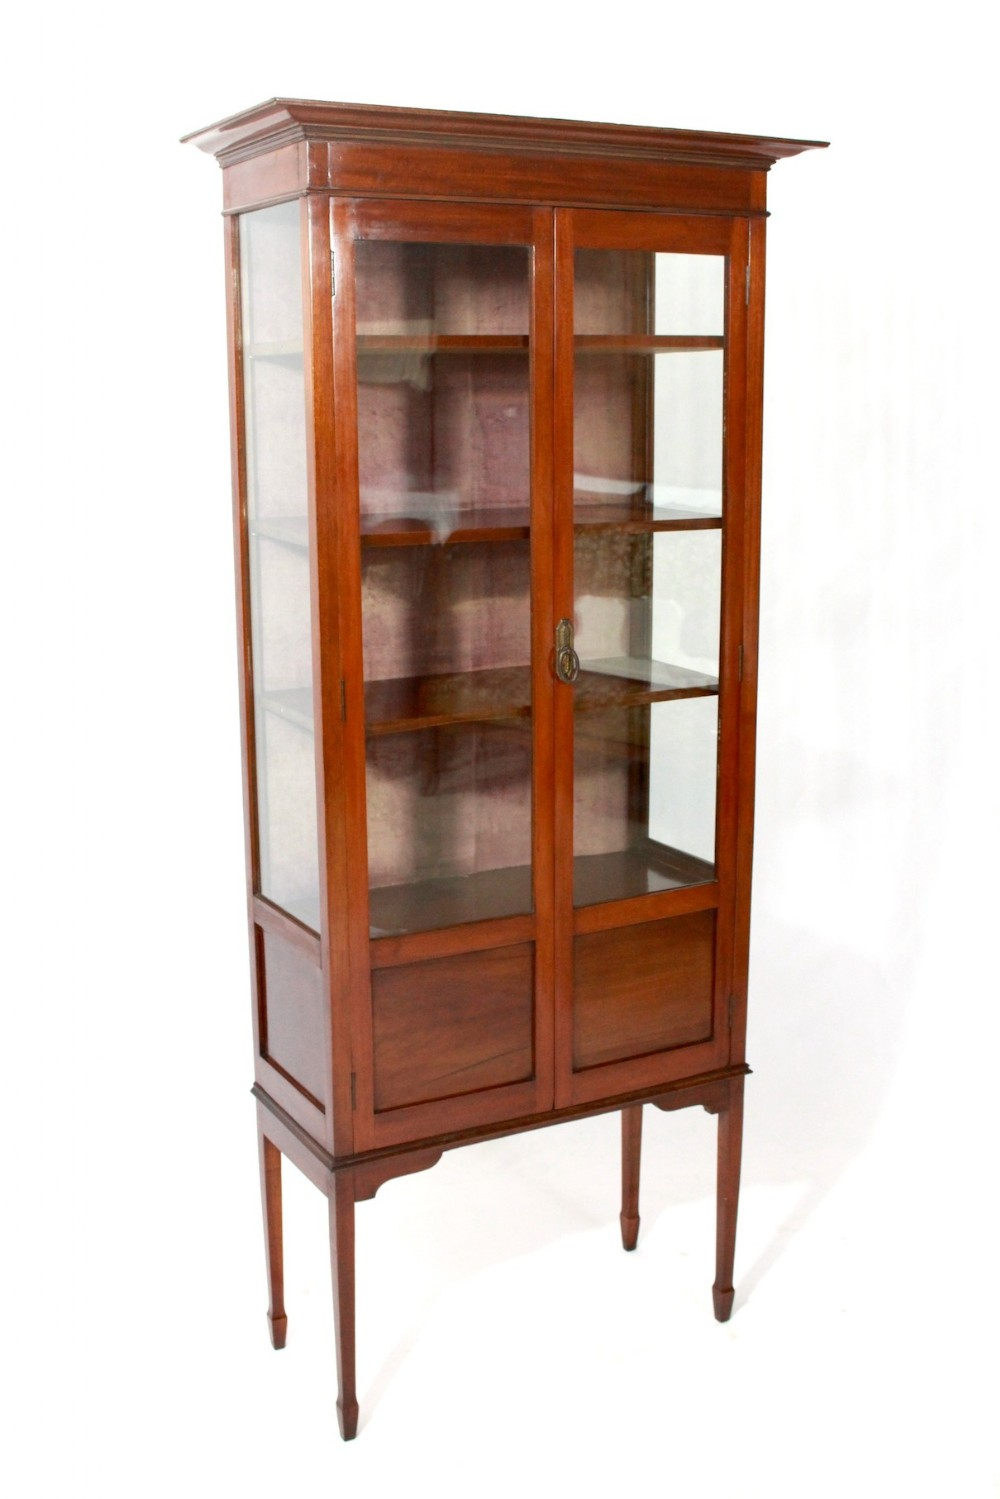 Antique Edwardian Mahogany Display Cabinet - Antique Edwardian Mahogany Display Cabinet Digitalstudiosweb.com